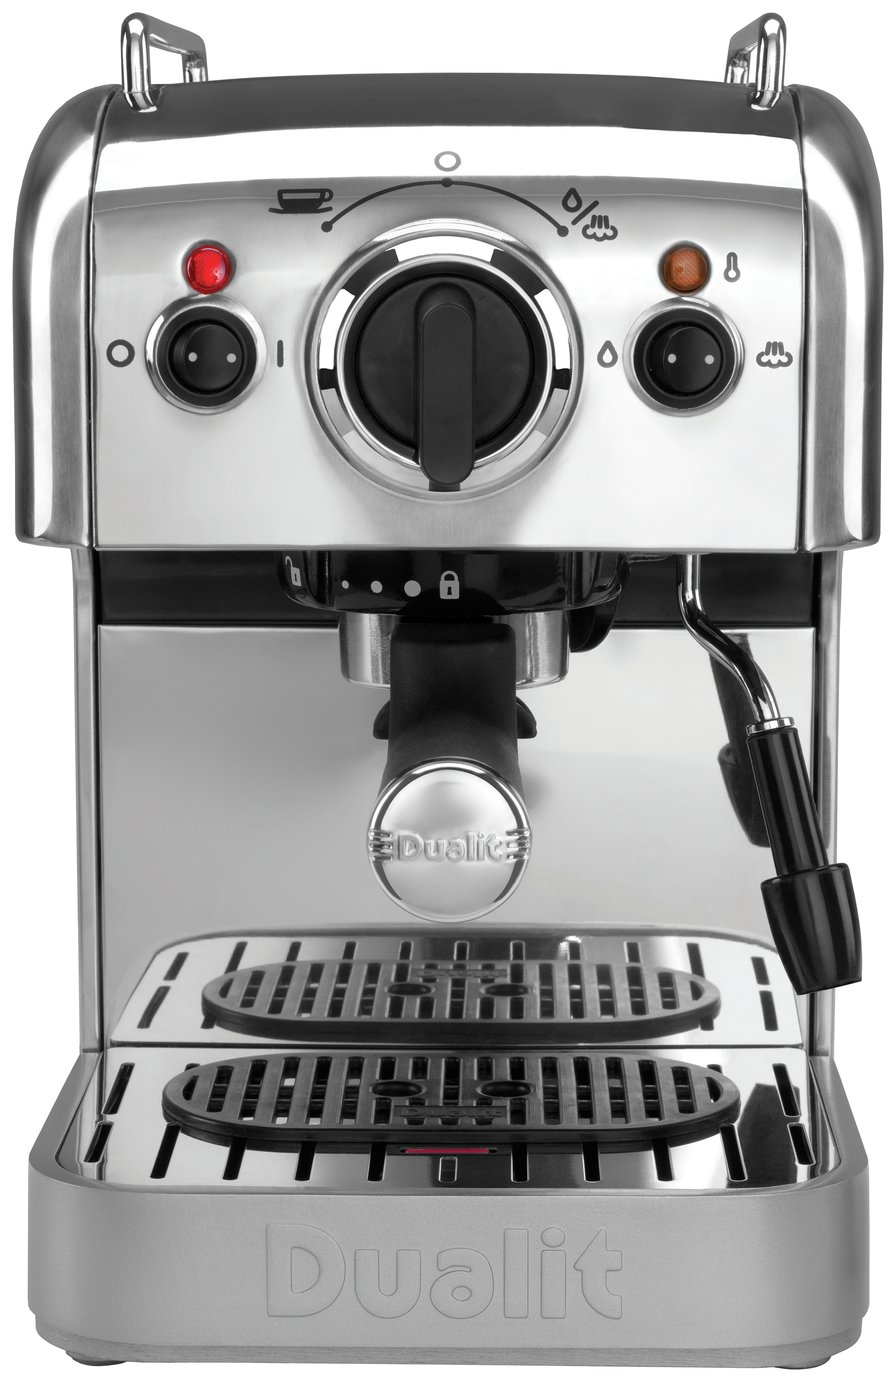 Image of Dualit 3 in 1 Coffee Machine - Stainless Steel.